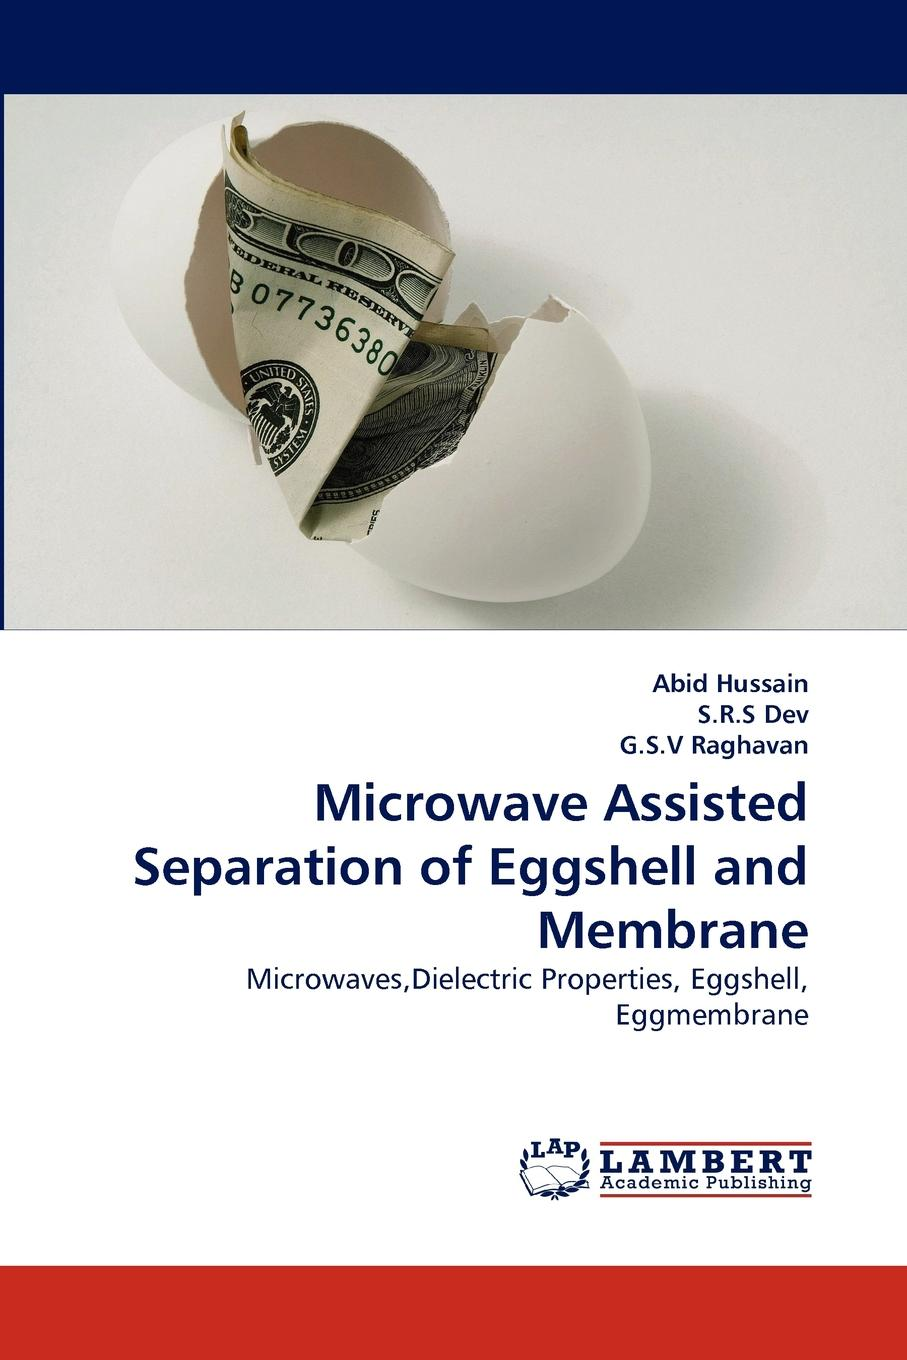 Abid Hussain, S.R.S Dev, G.S.V Raghavan Microwave Assisted Separation of Eggshell and Membrane membrane switch for 2711p b10c4b2 panelview plus ce1000